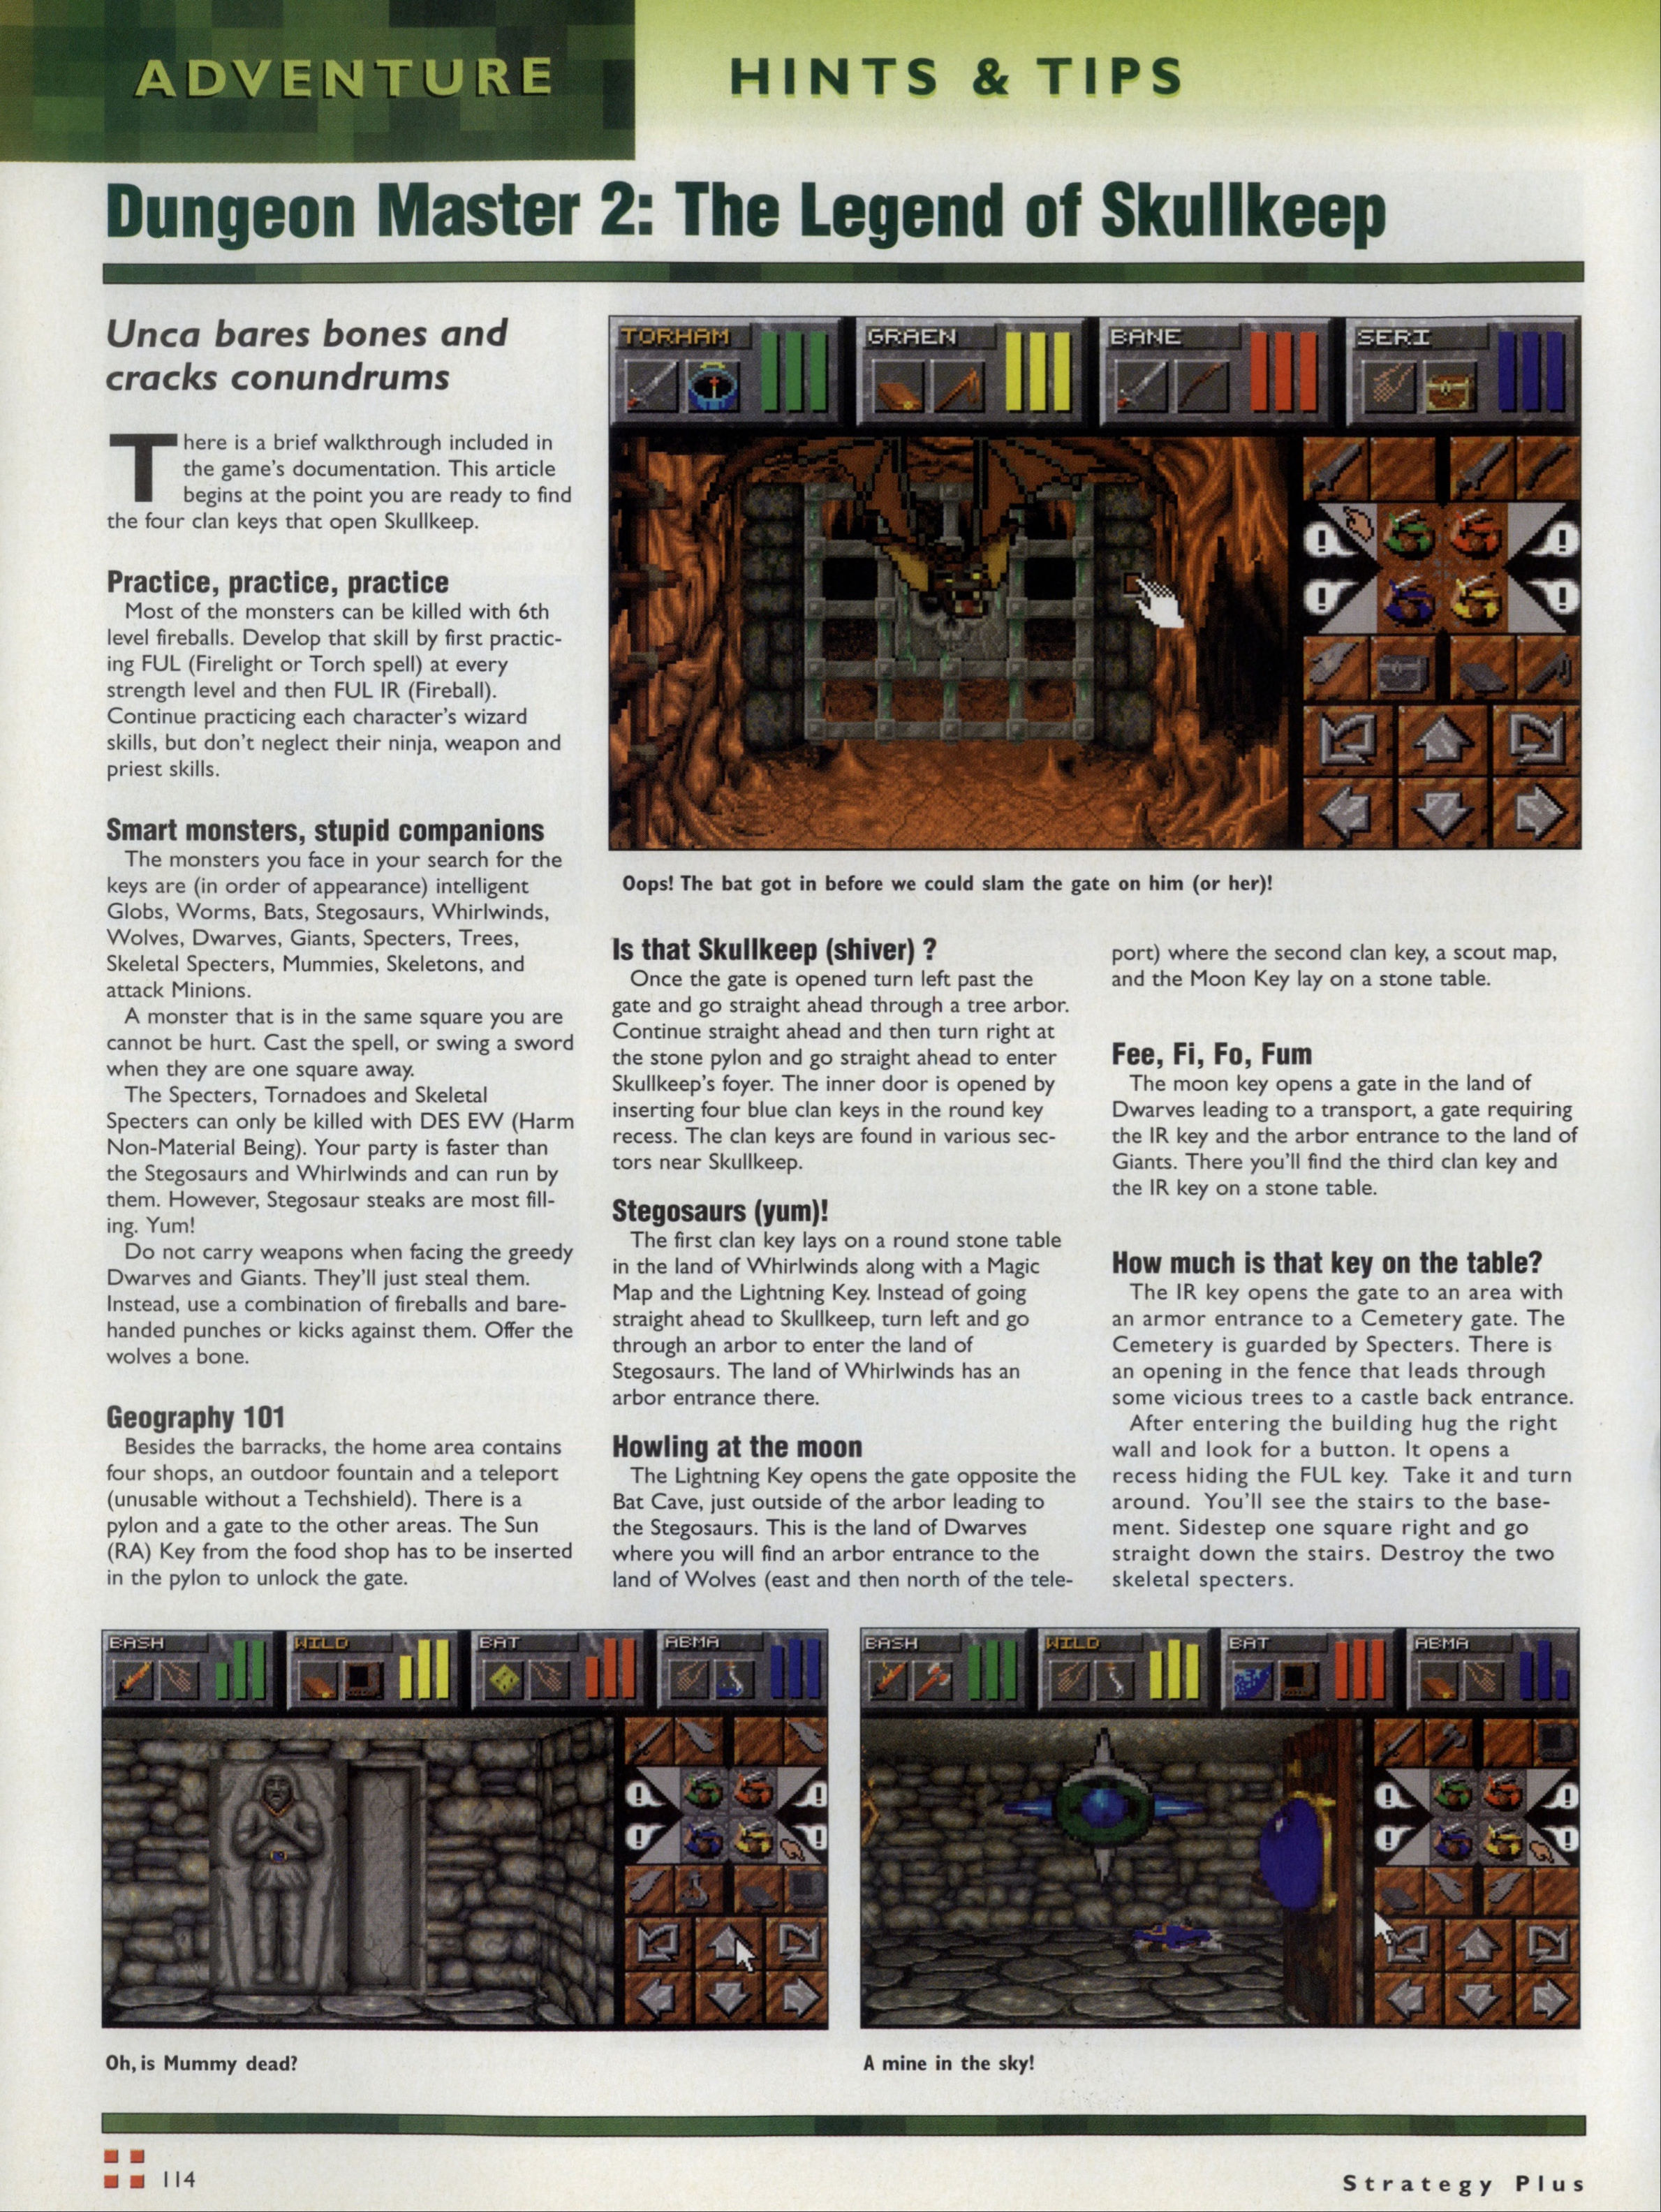 Dungeon Master II Hints published in British-American-Canadian magazine 'Computer Games Strategy Plus', Issue #60 November 1995, Page 114